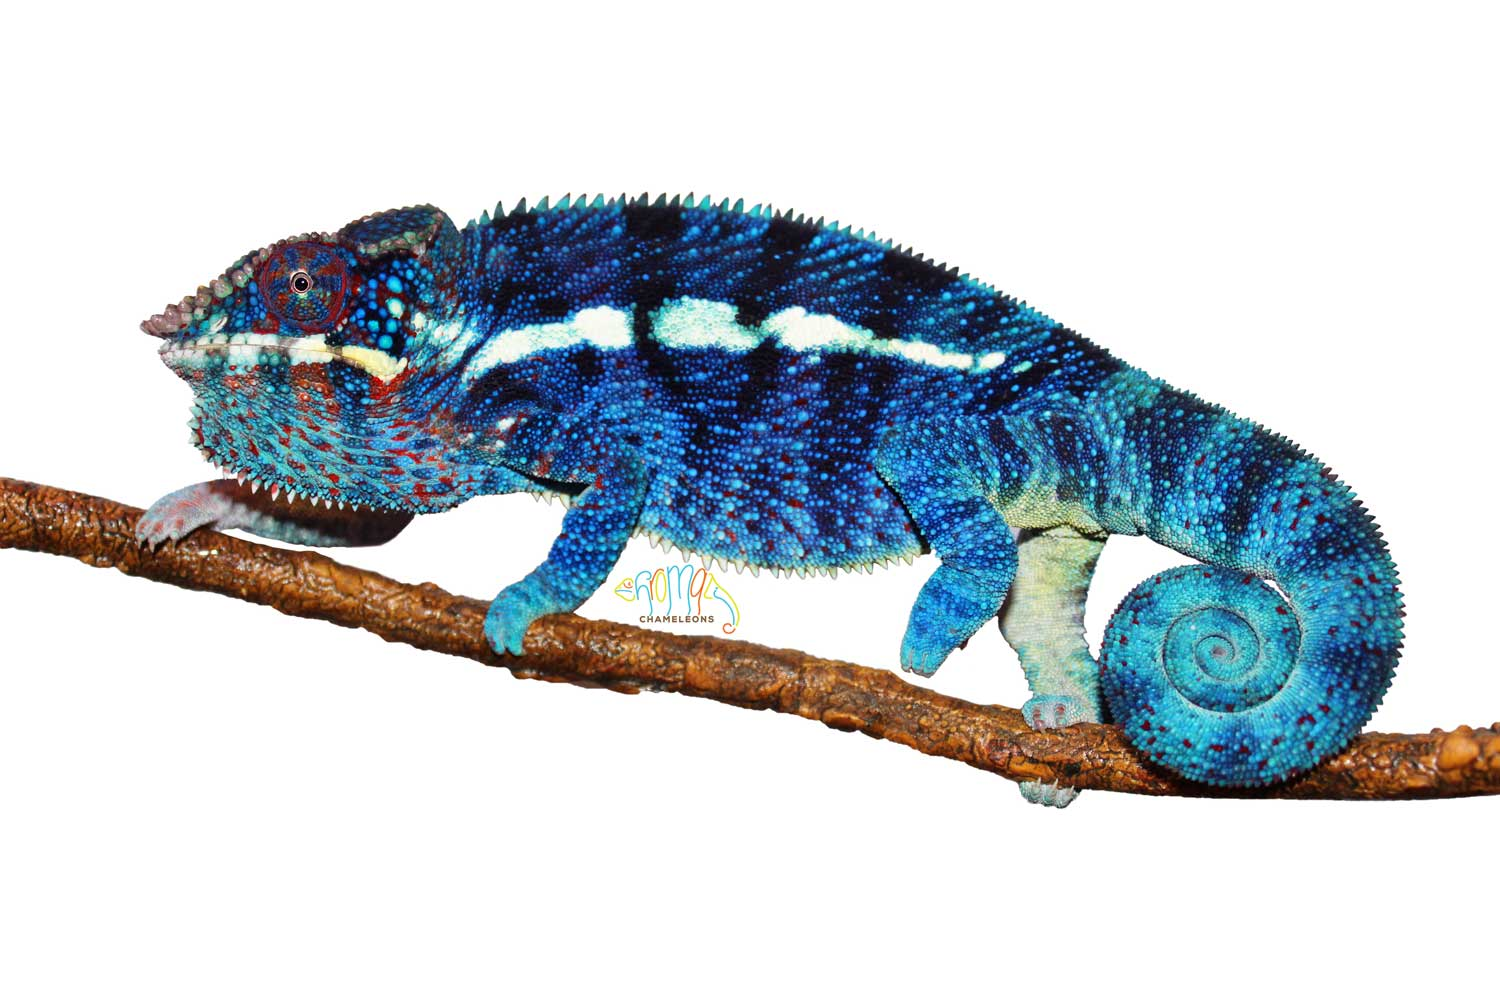 Ambanja Panther Chameleons for sale